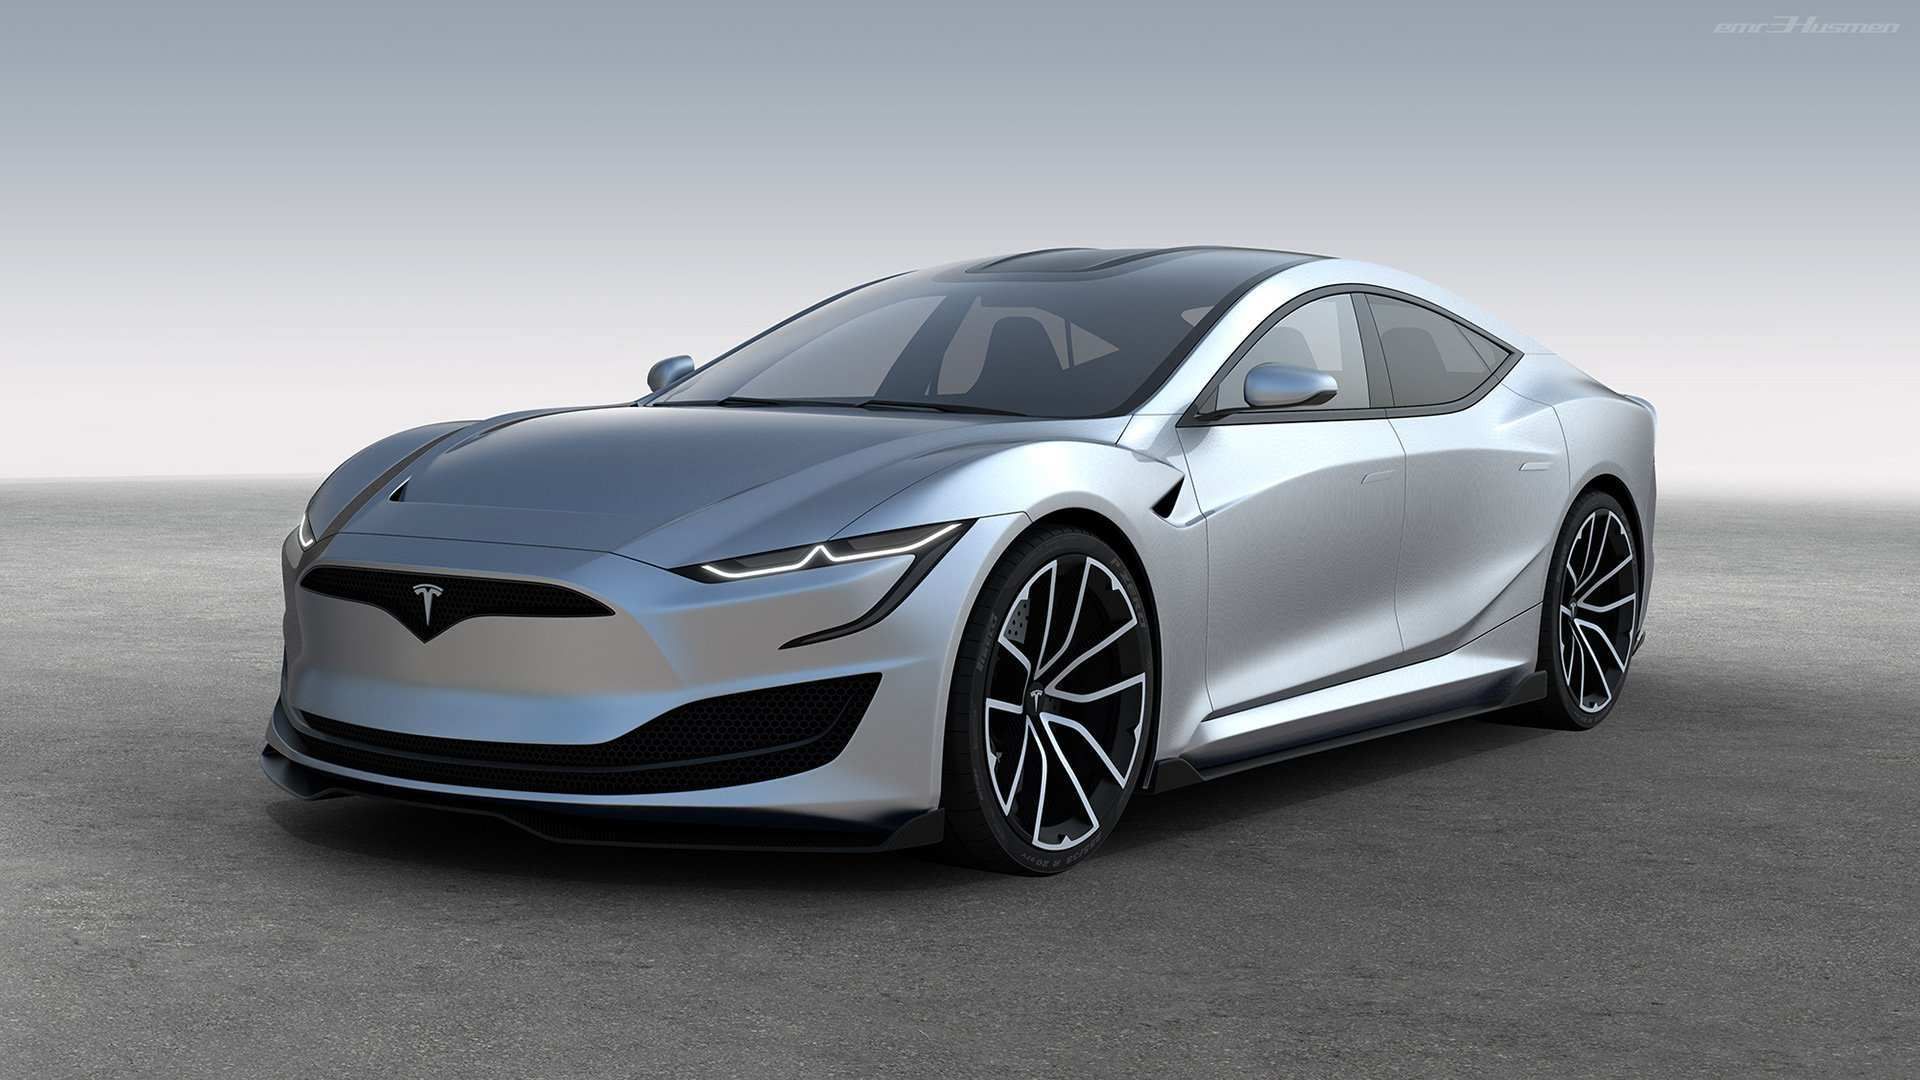 57 A 2020 Tesla Model S Price And Release Date